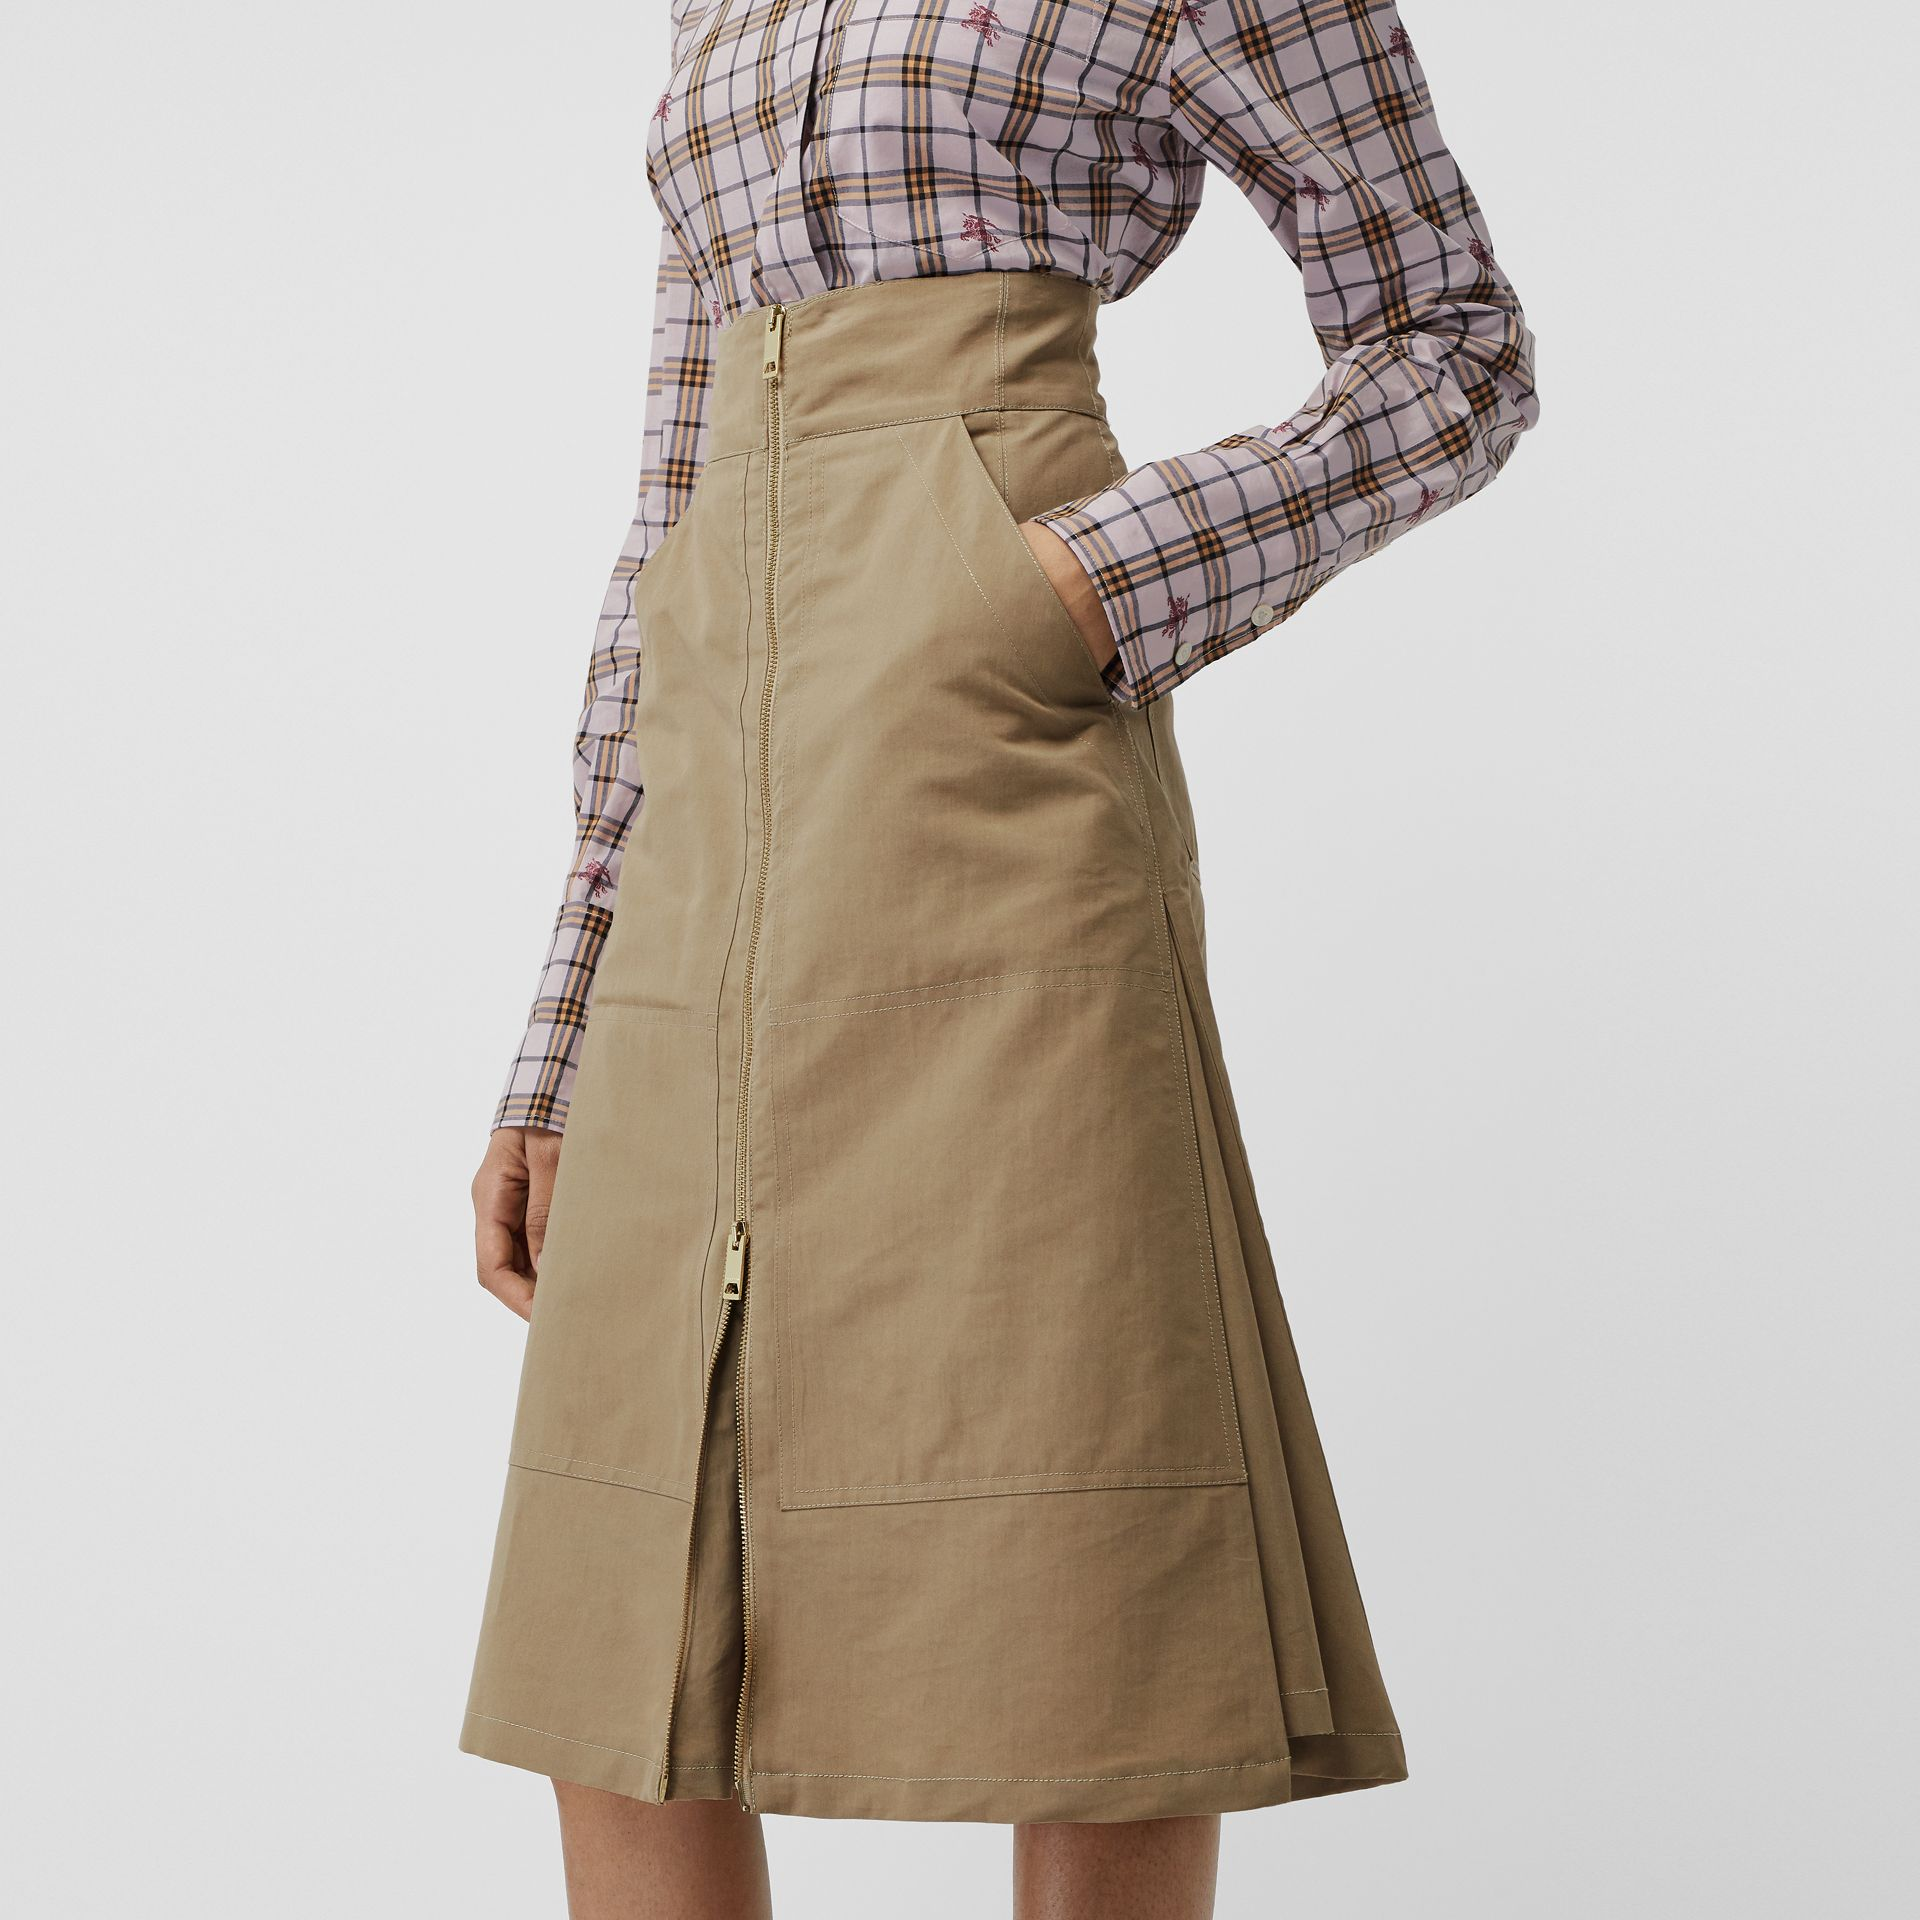 Cotton Silk High-waisted Skirt in Beige - Women | Burberry - gallery image 1